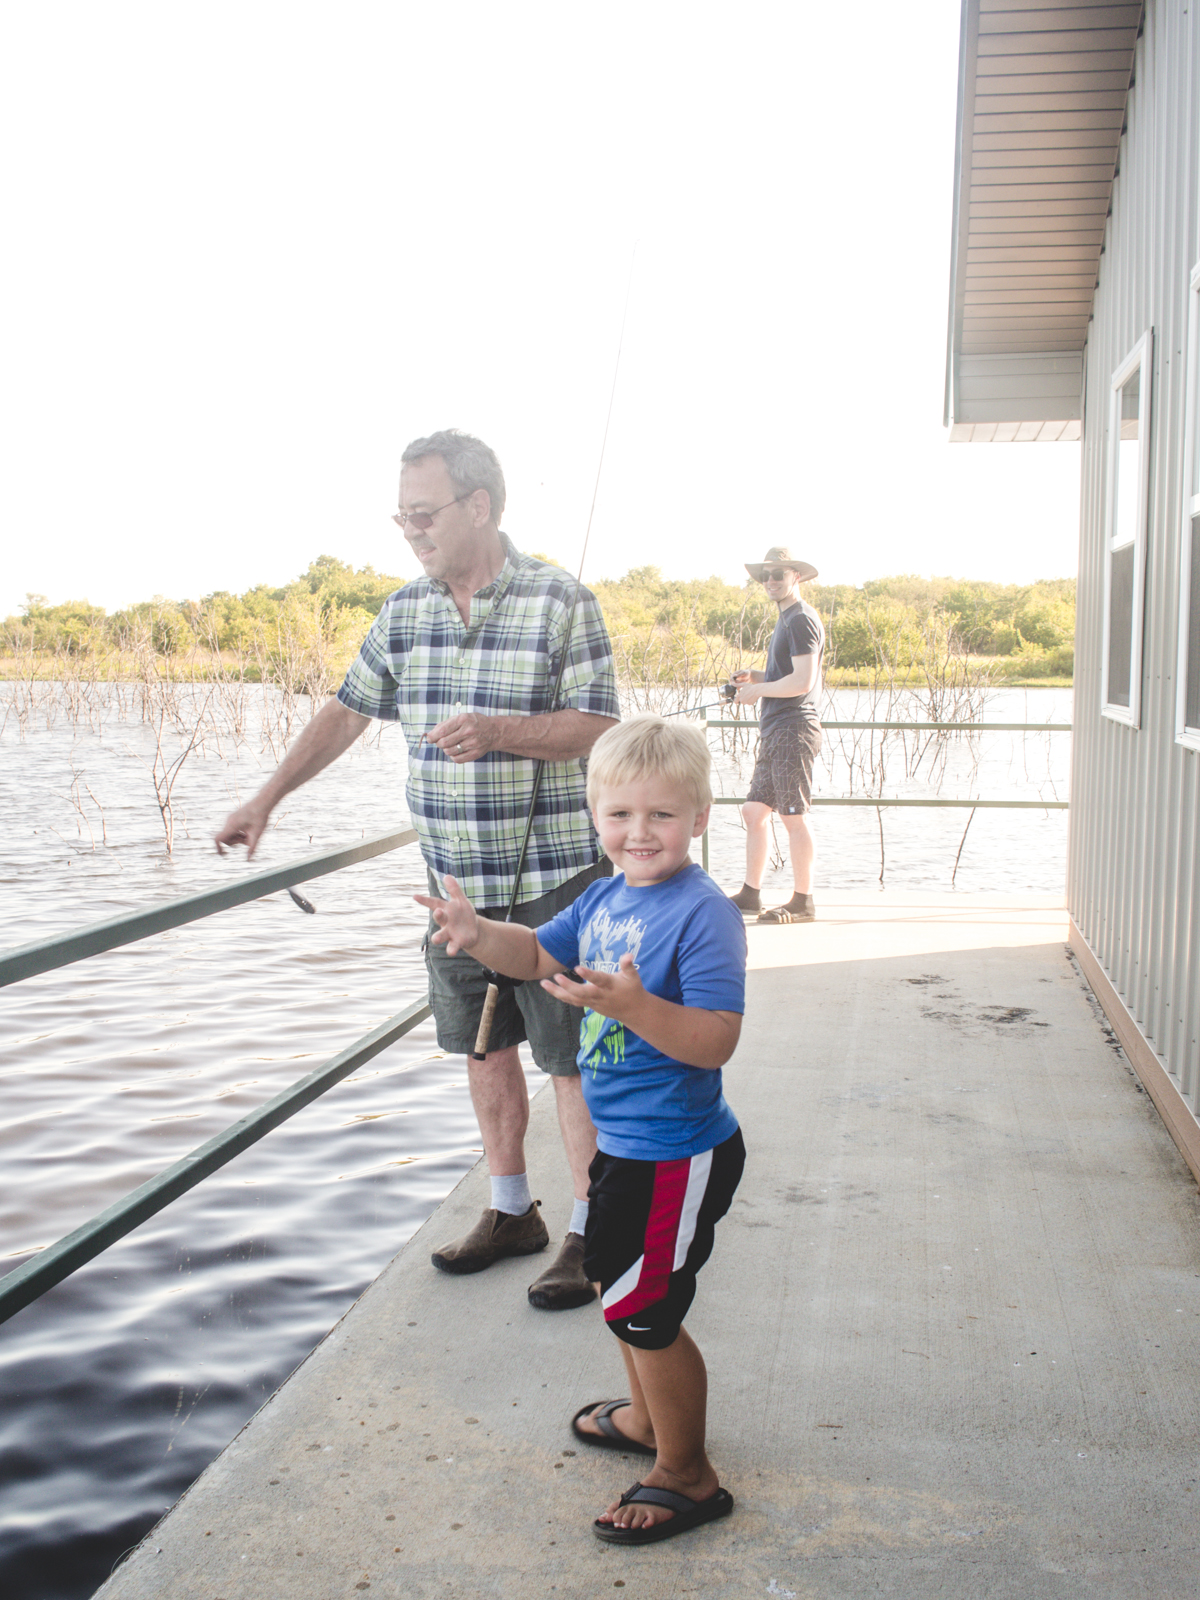 Grandpa, Grandson Fishing | Lil Toledo Lodge, Chanute, KS | Carla Gabriel Garcia